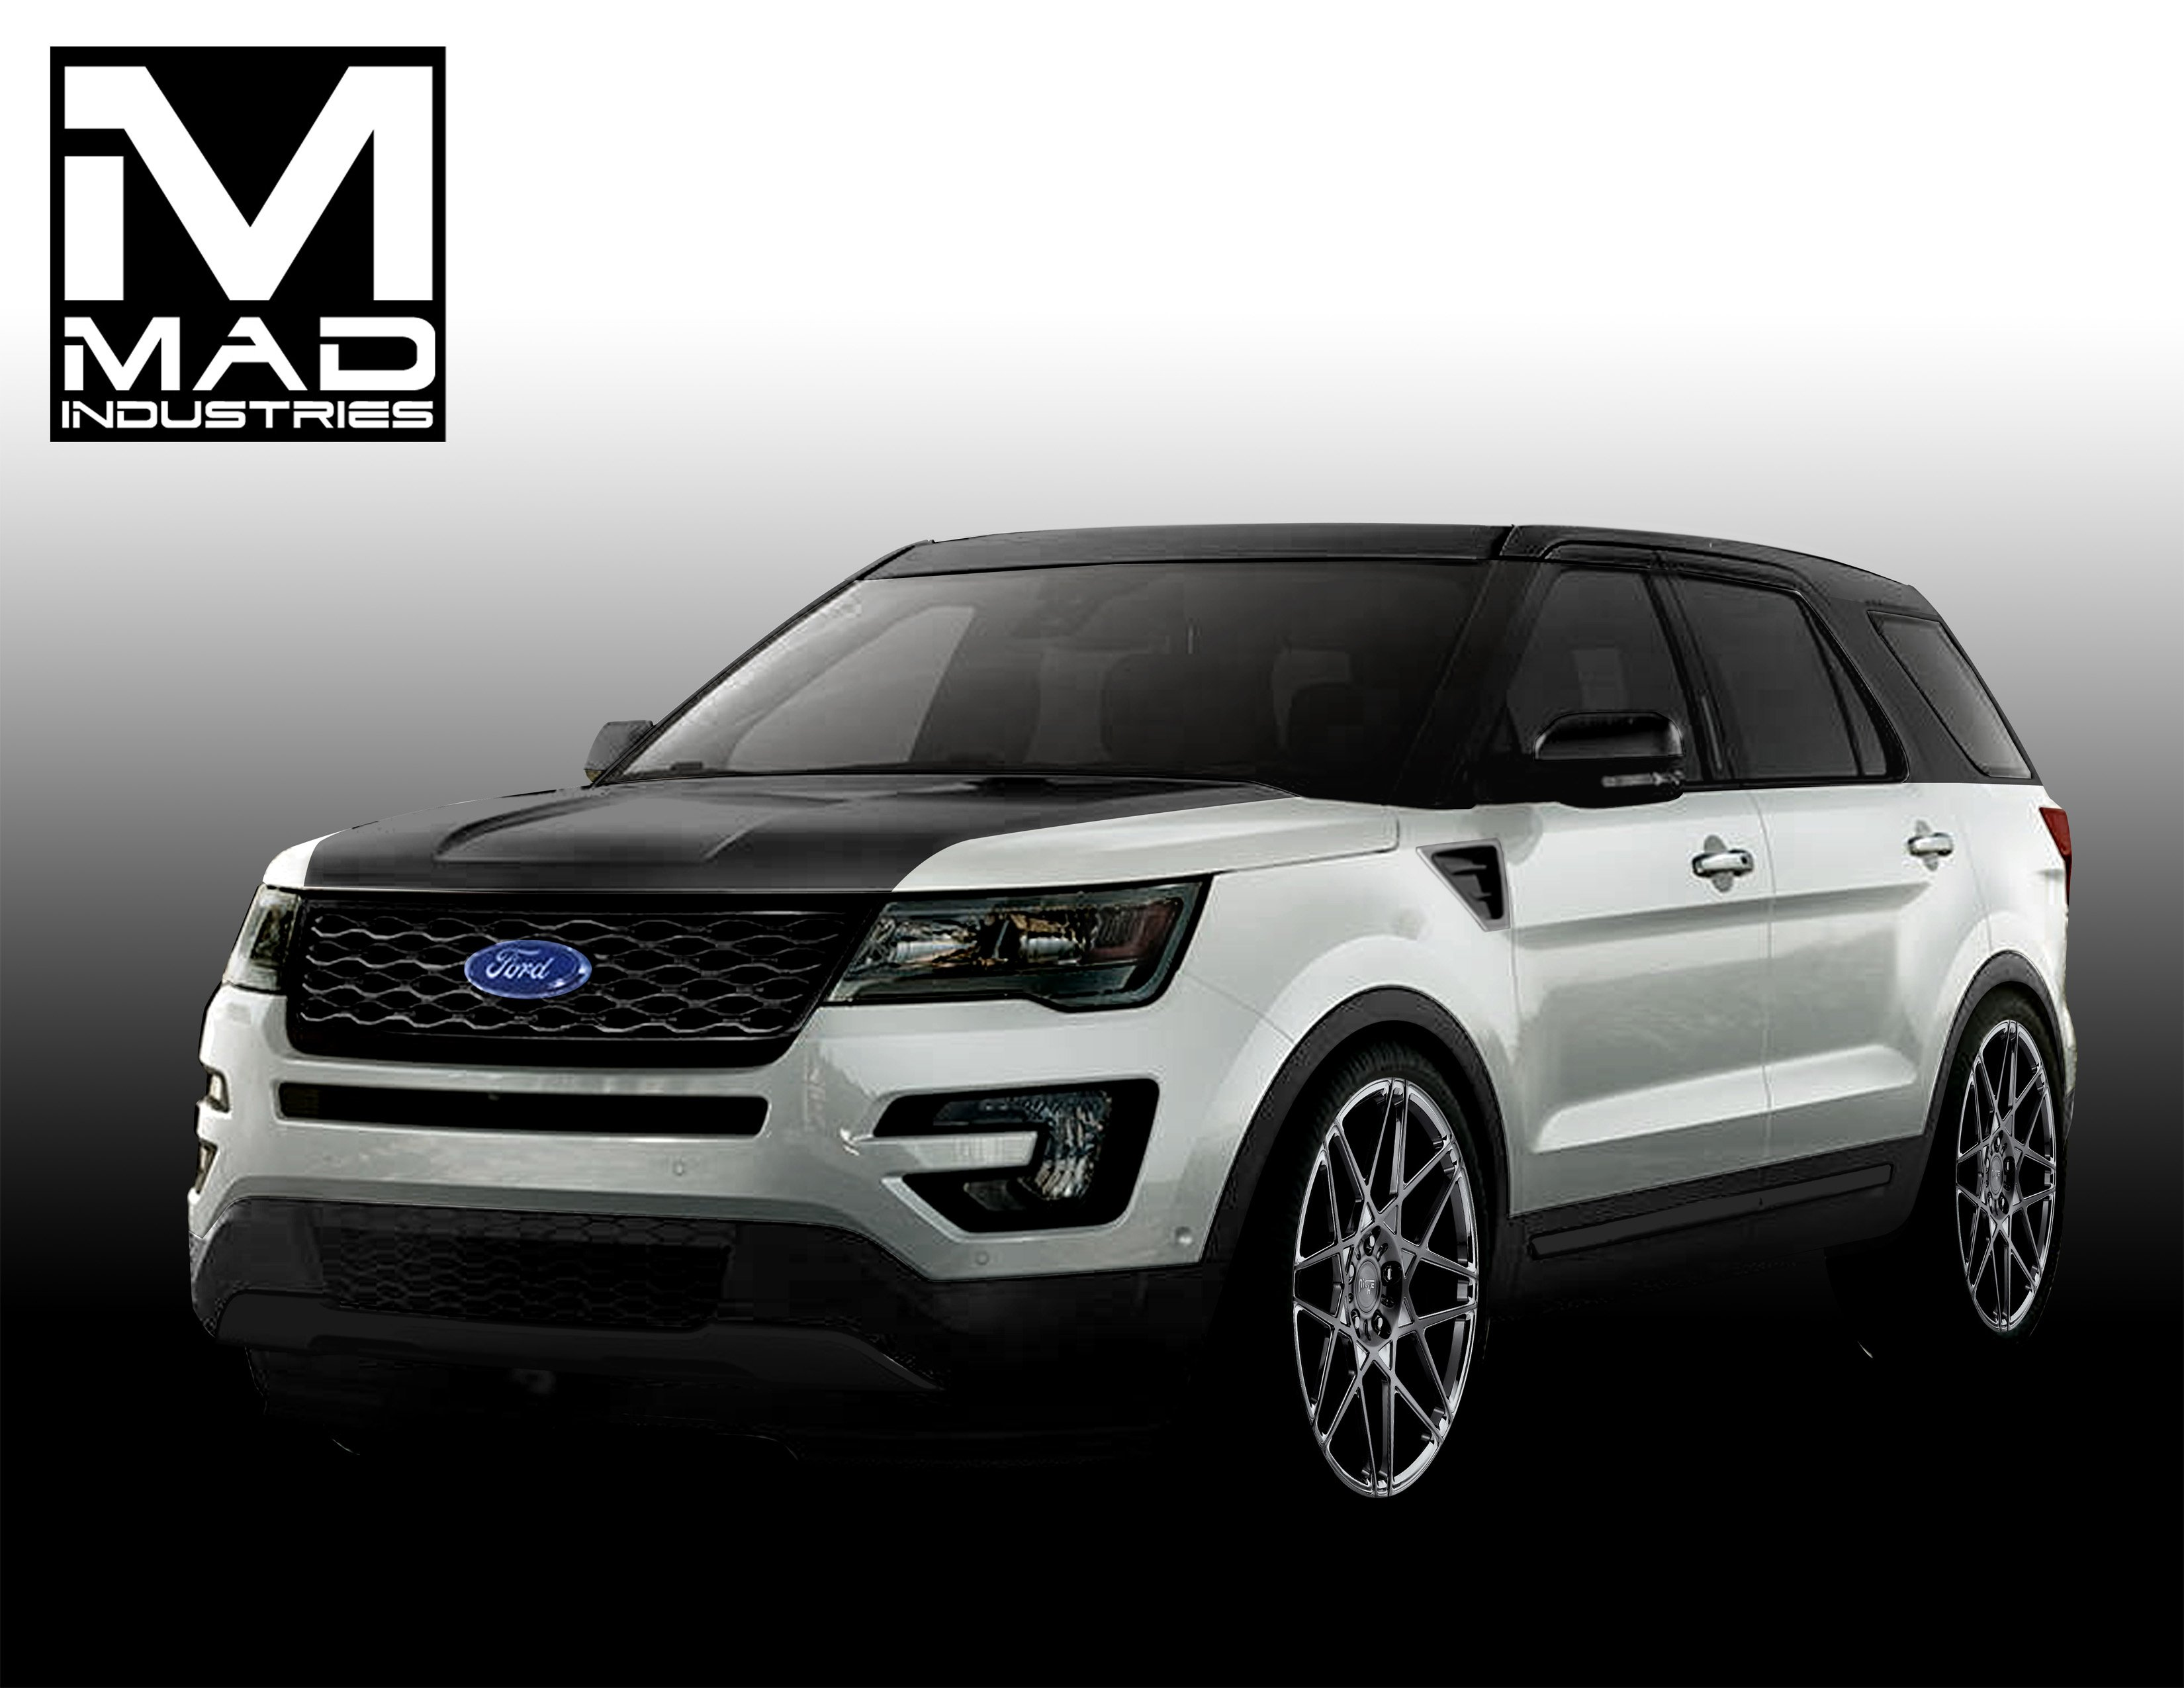 sema mad auto ford industries sport dressed get up show edge for news explorer suv